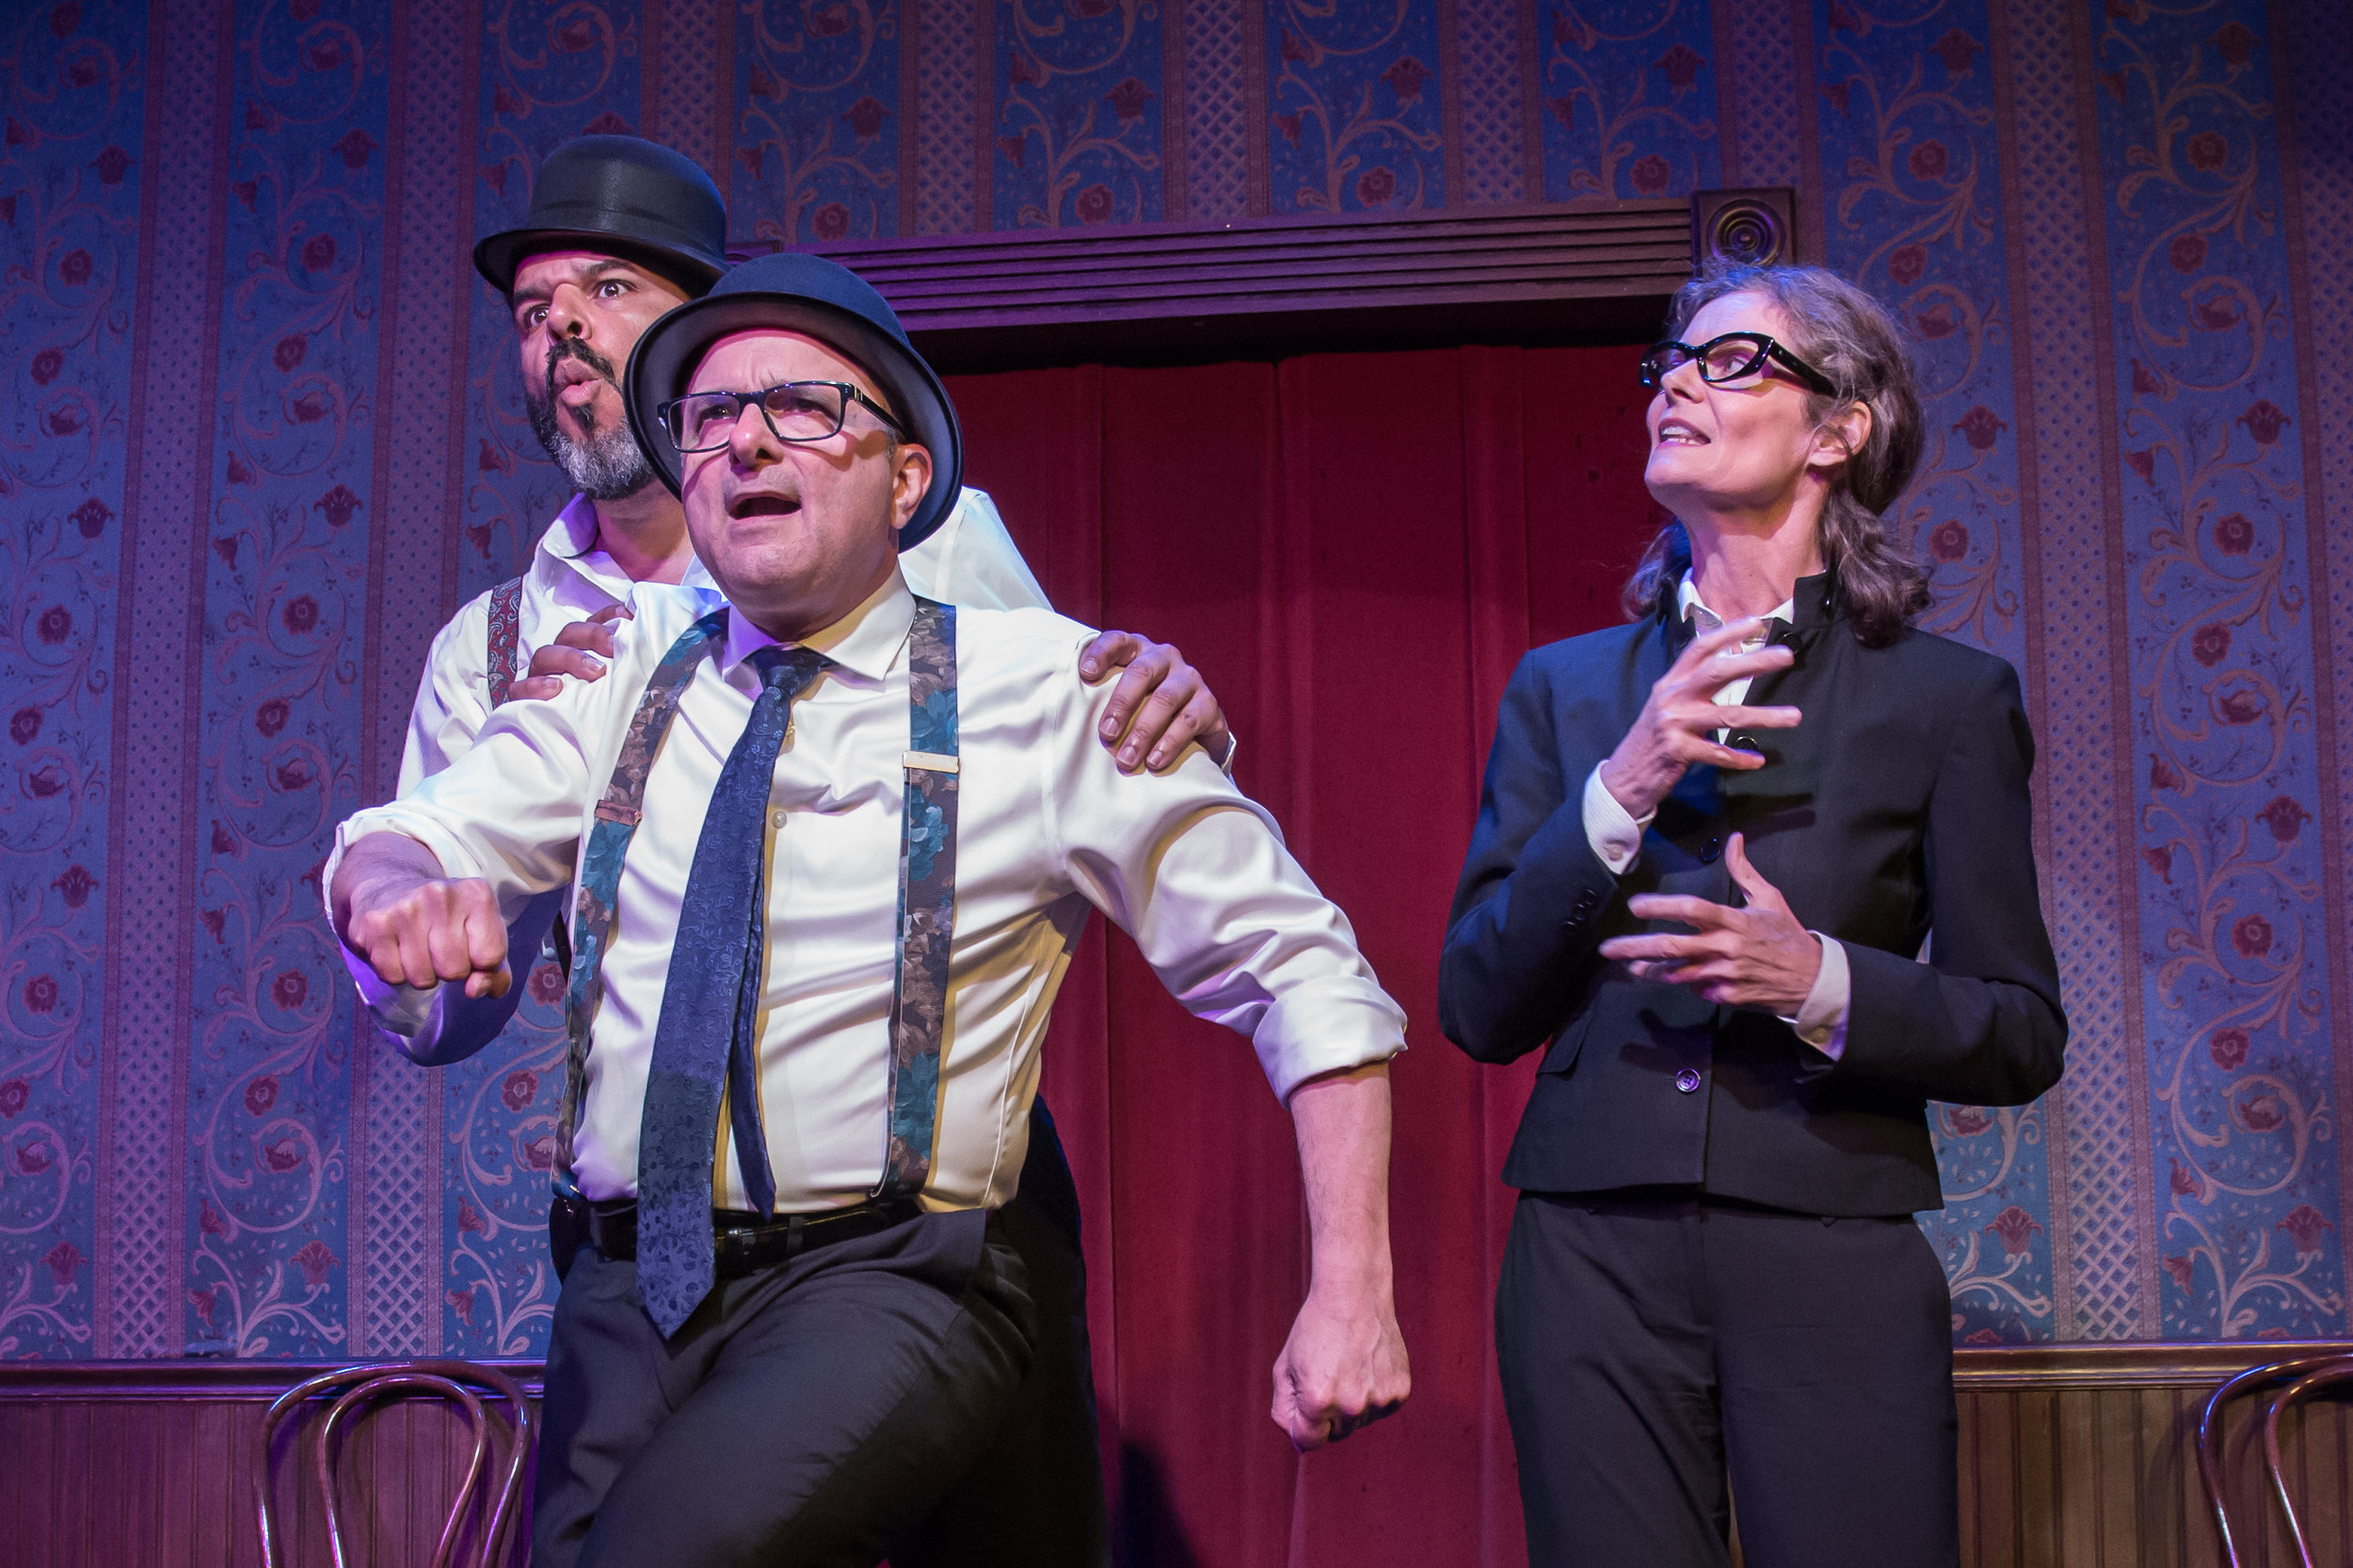 "Langley (Ric Walker) and Pratt (Joe Janes"" perform their vaudeville routine ""Right in the Balzac"" much to Alice's (Kelly Haran) disgust. Photo by Jerry Schulman."